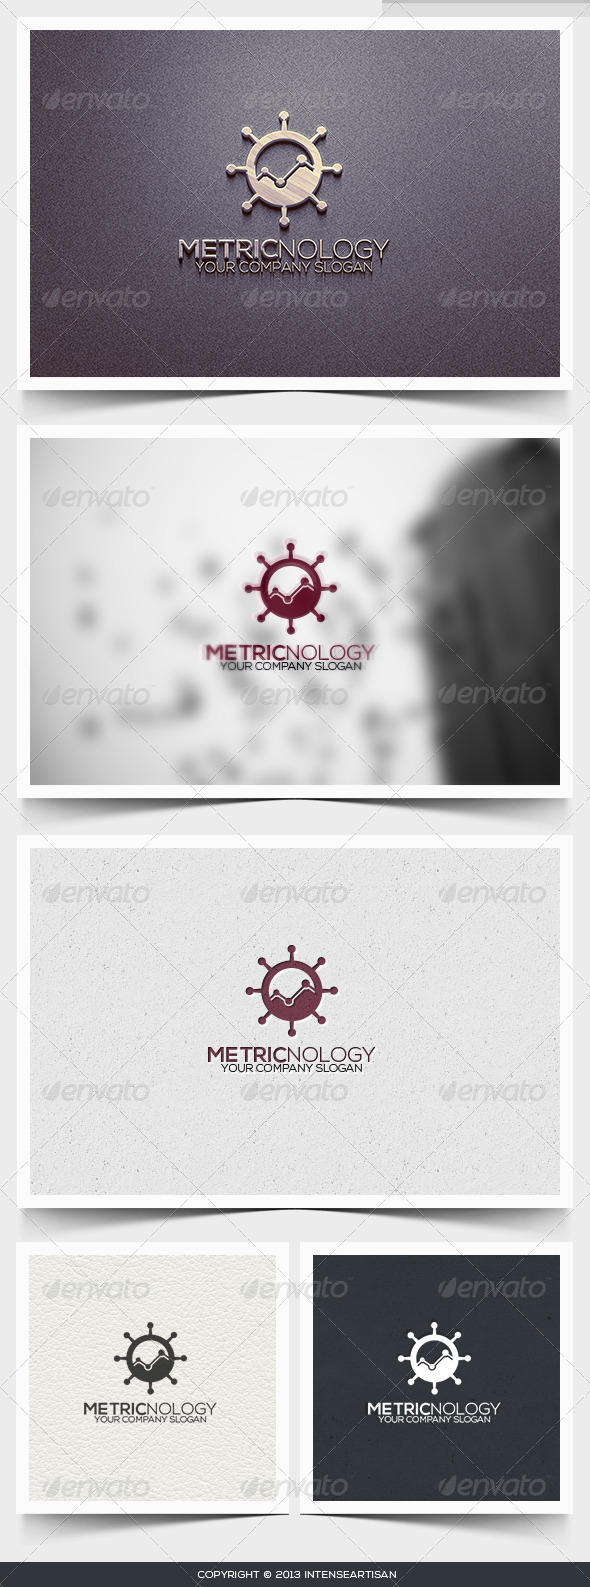 Metricnology Logo Template - Objects Logo Templates